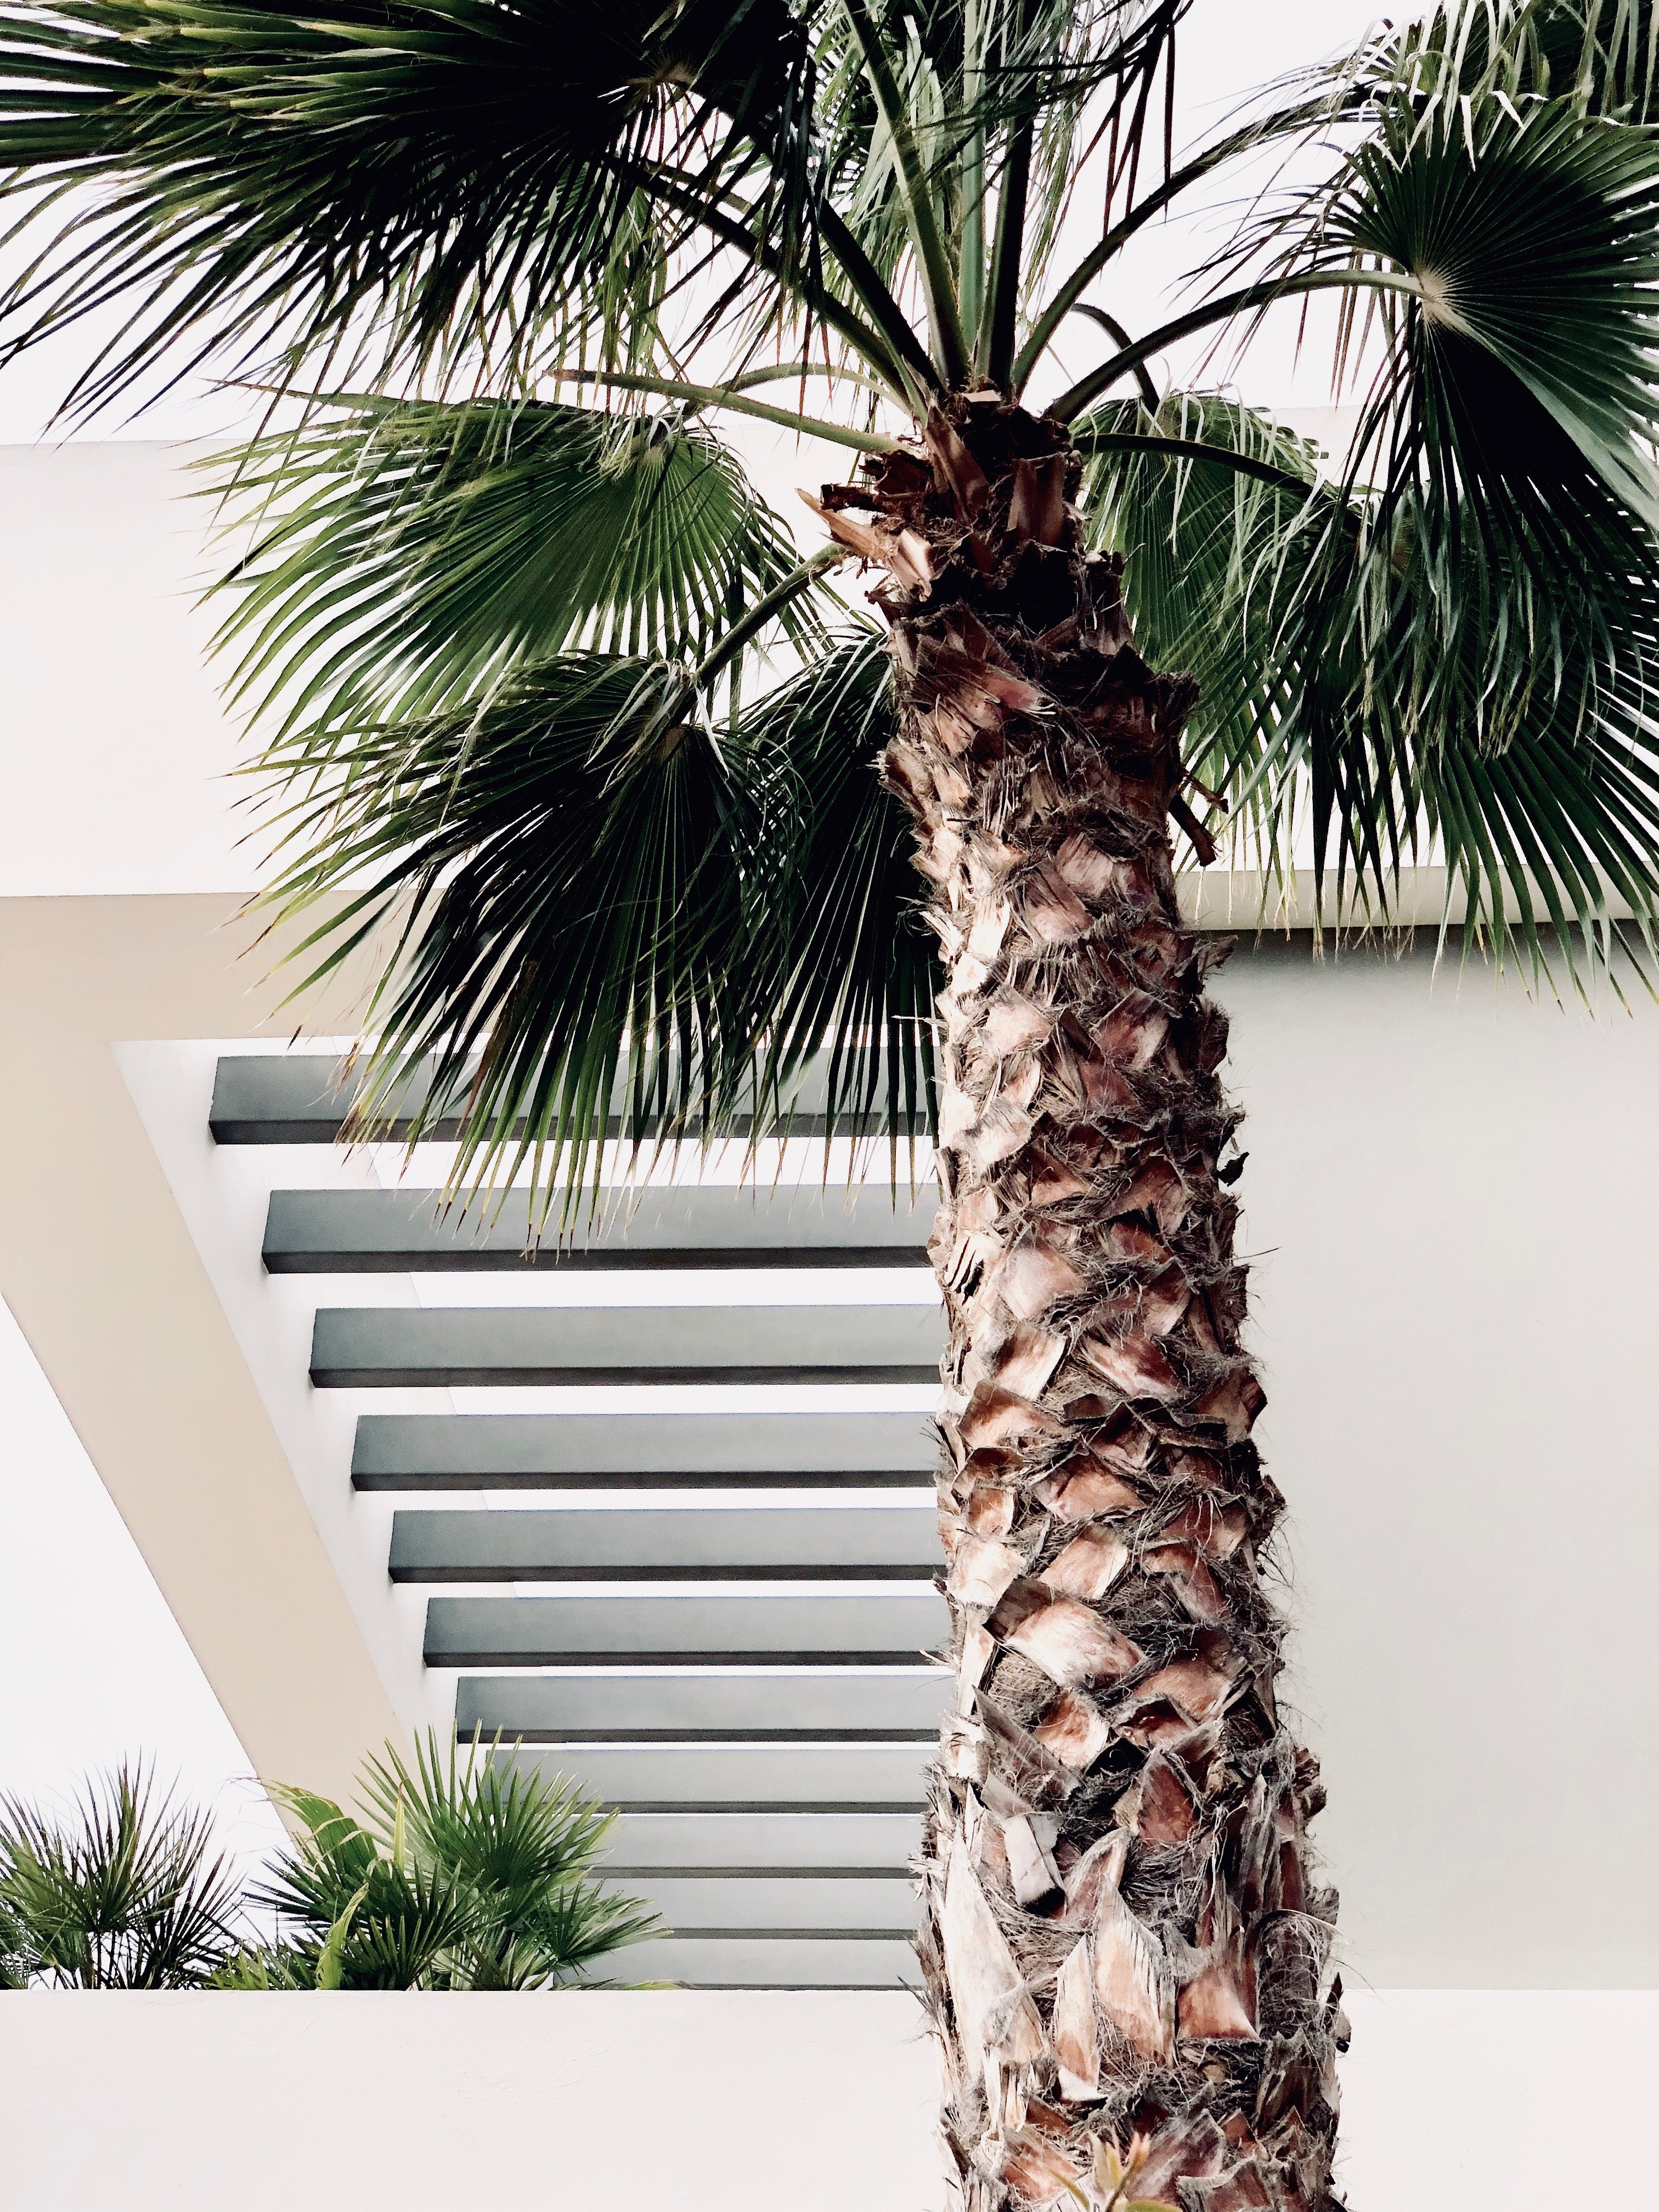 Related Searches Leaves Palm Tree Tropical